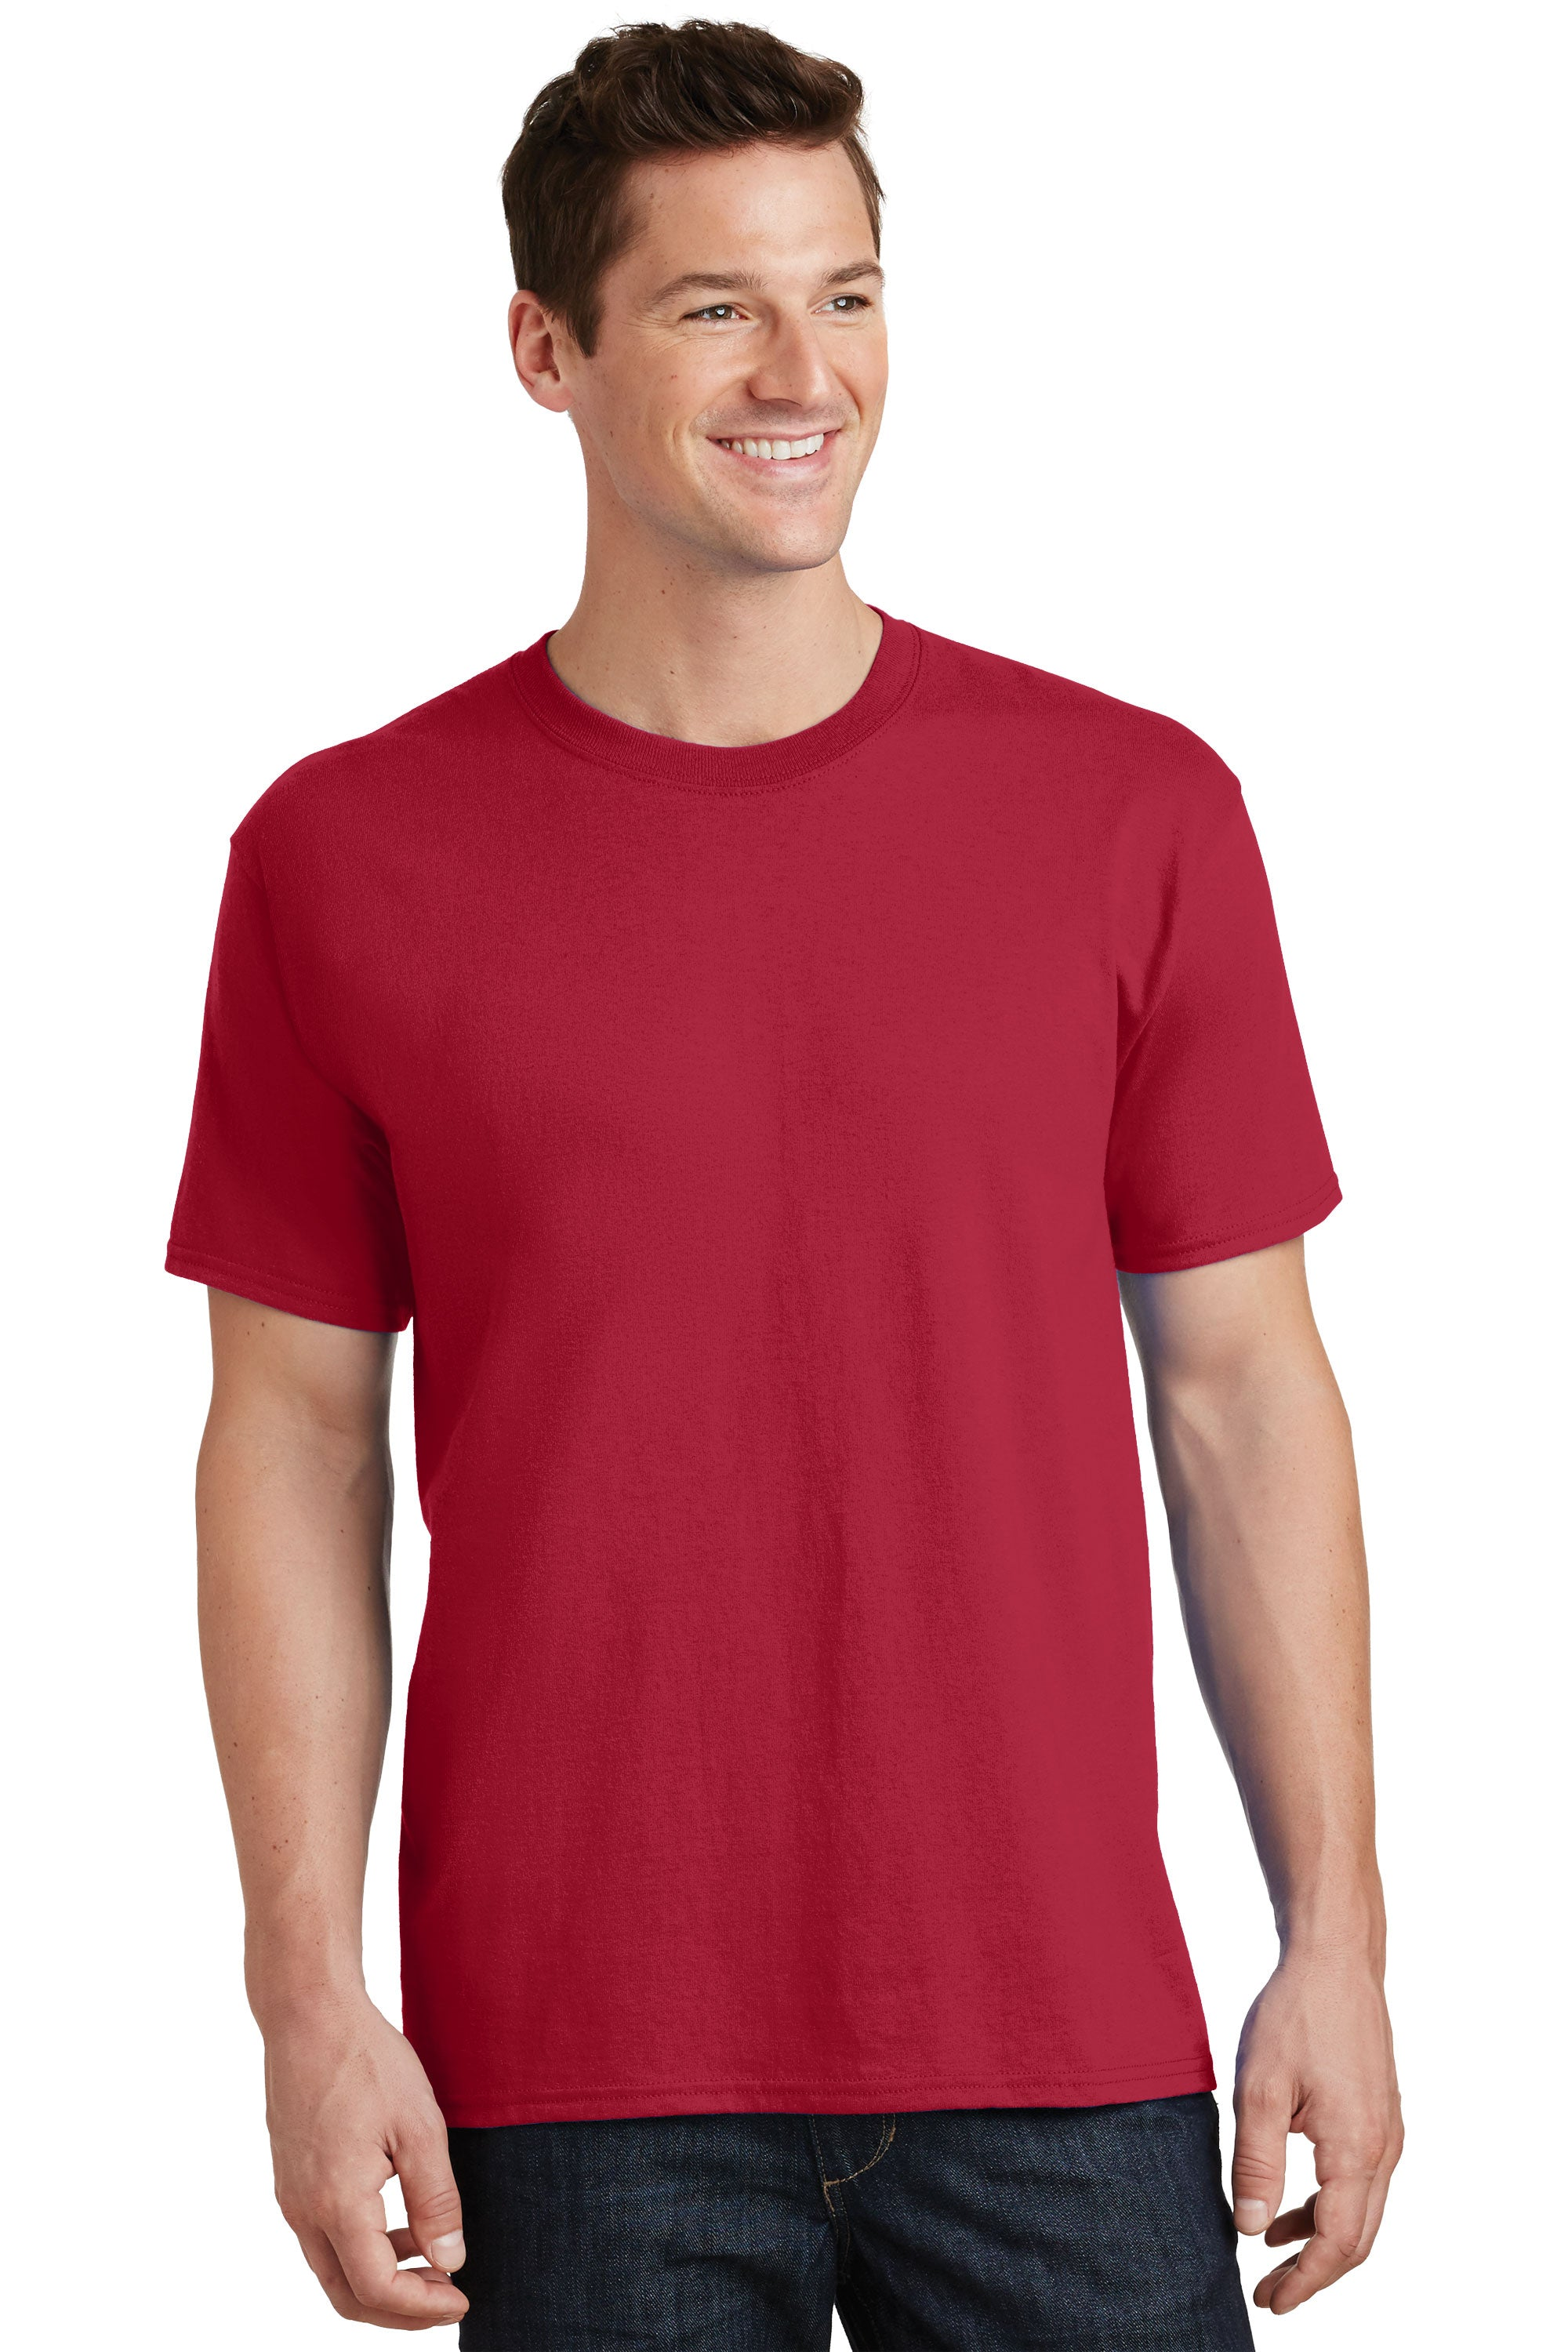 YOUR CUSTOM DESIGN - MEN'S T-SHIRT